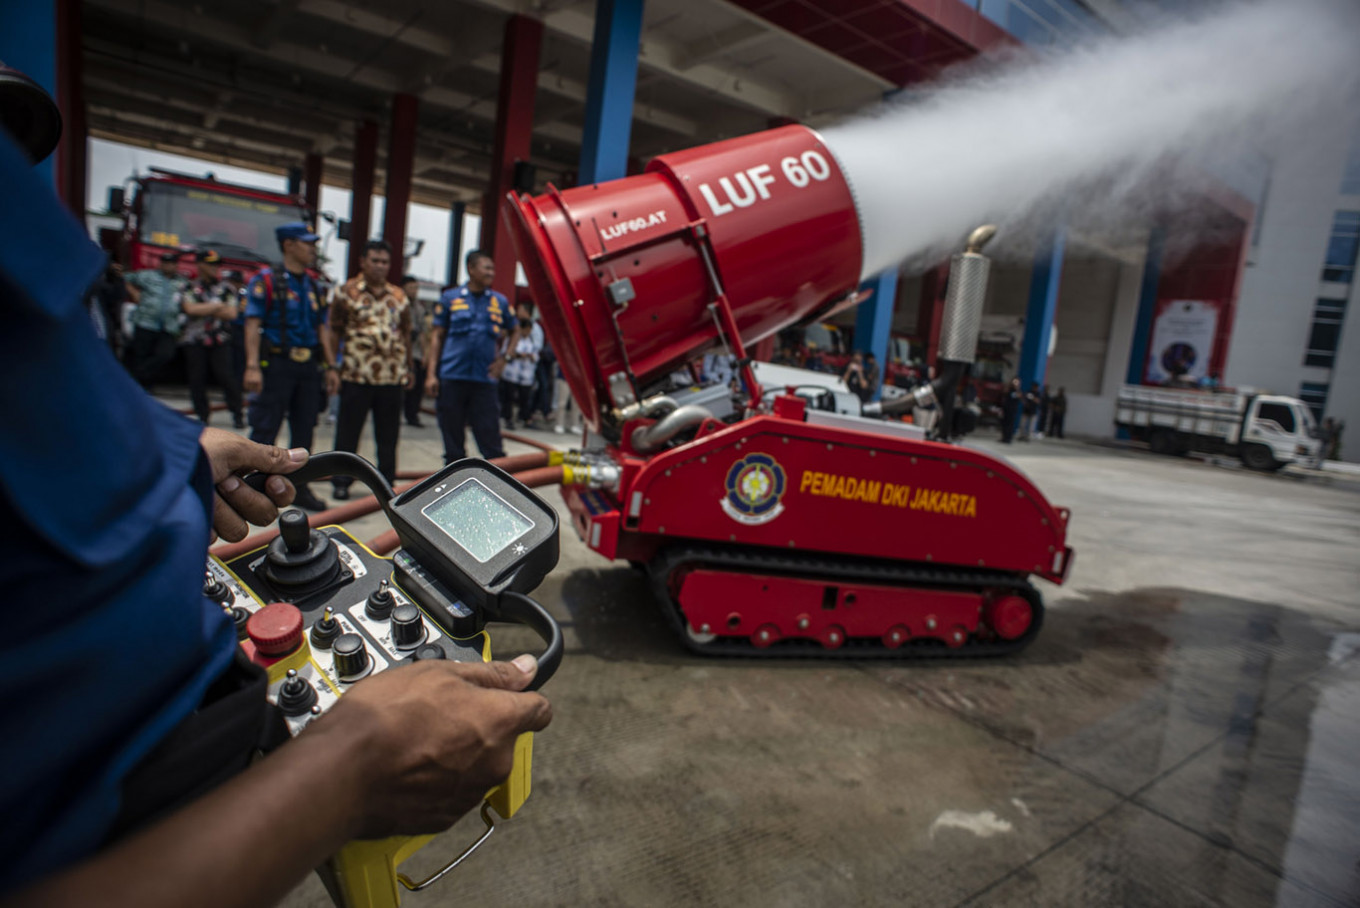 Jakarta purchases fire-fighting robot with plans to buy more